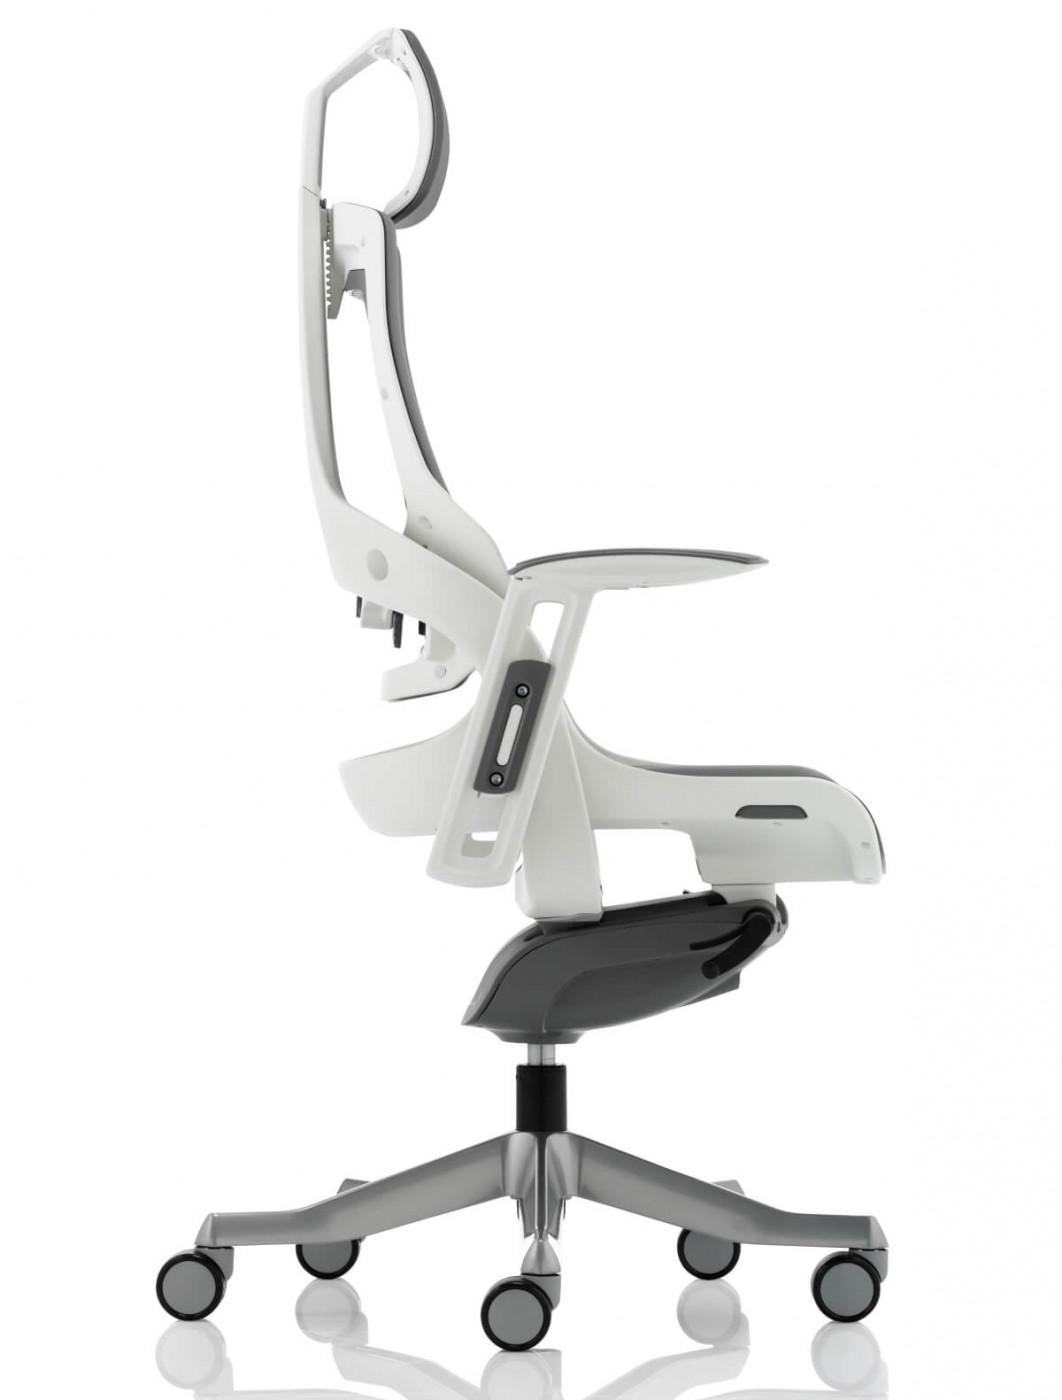 Zure Grey Executive Elastomer Office Chair w/ Headrest KC0164